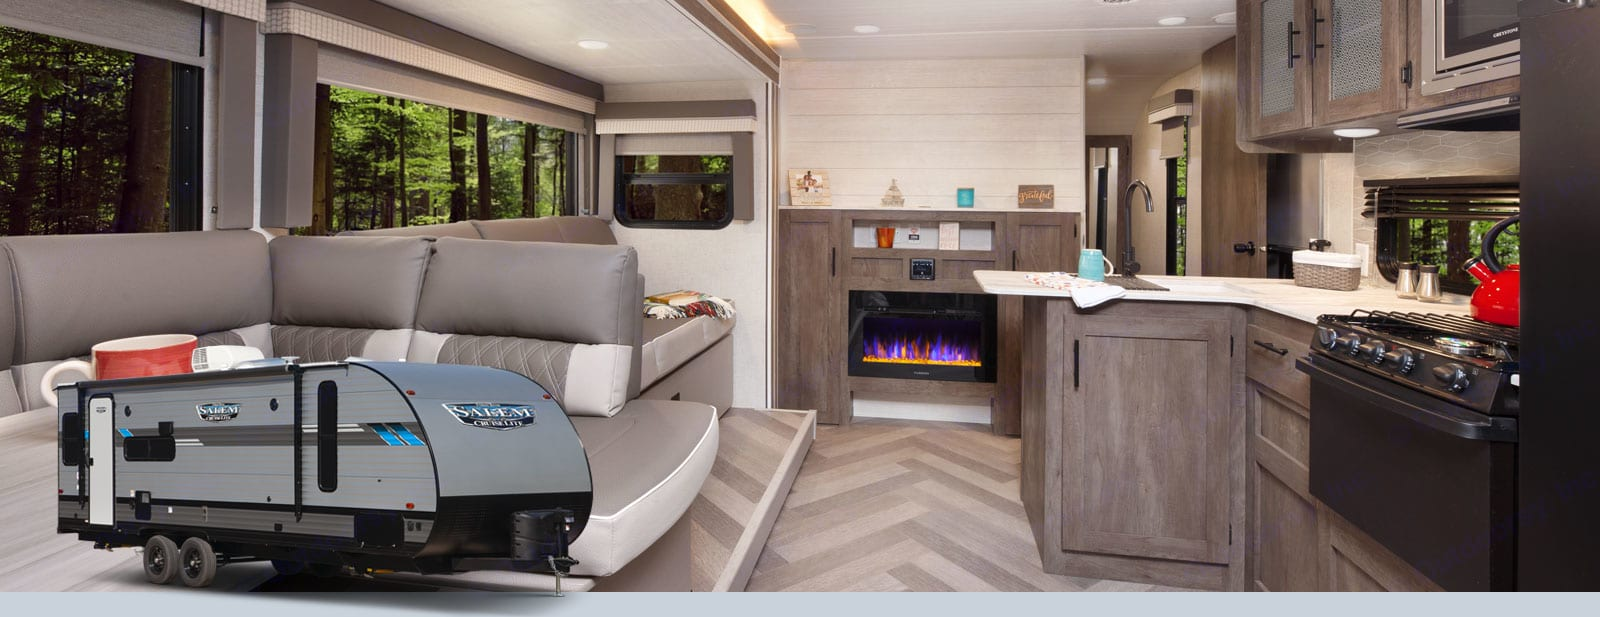 Forest River Cruise Lite 2021